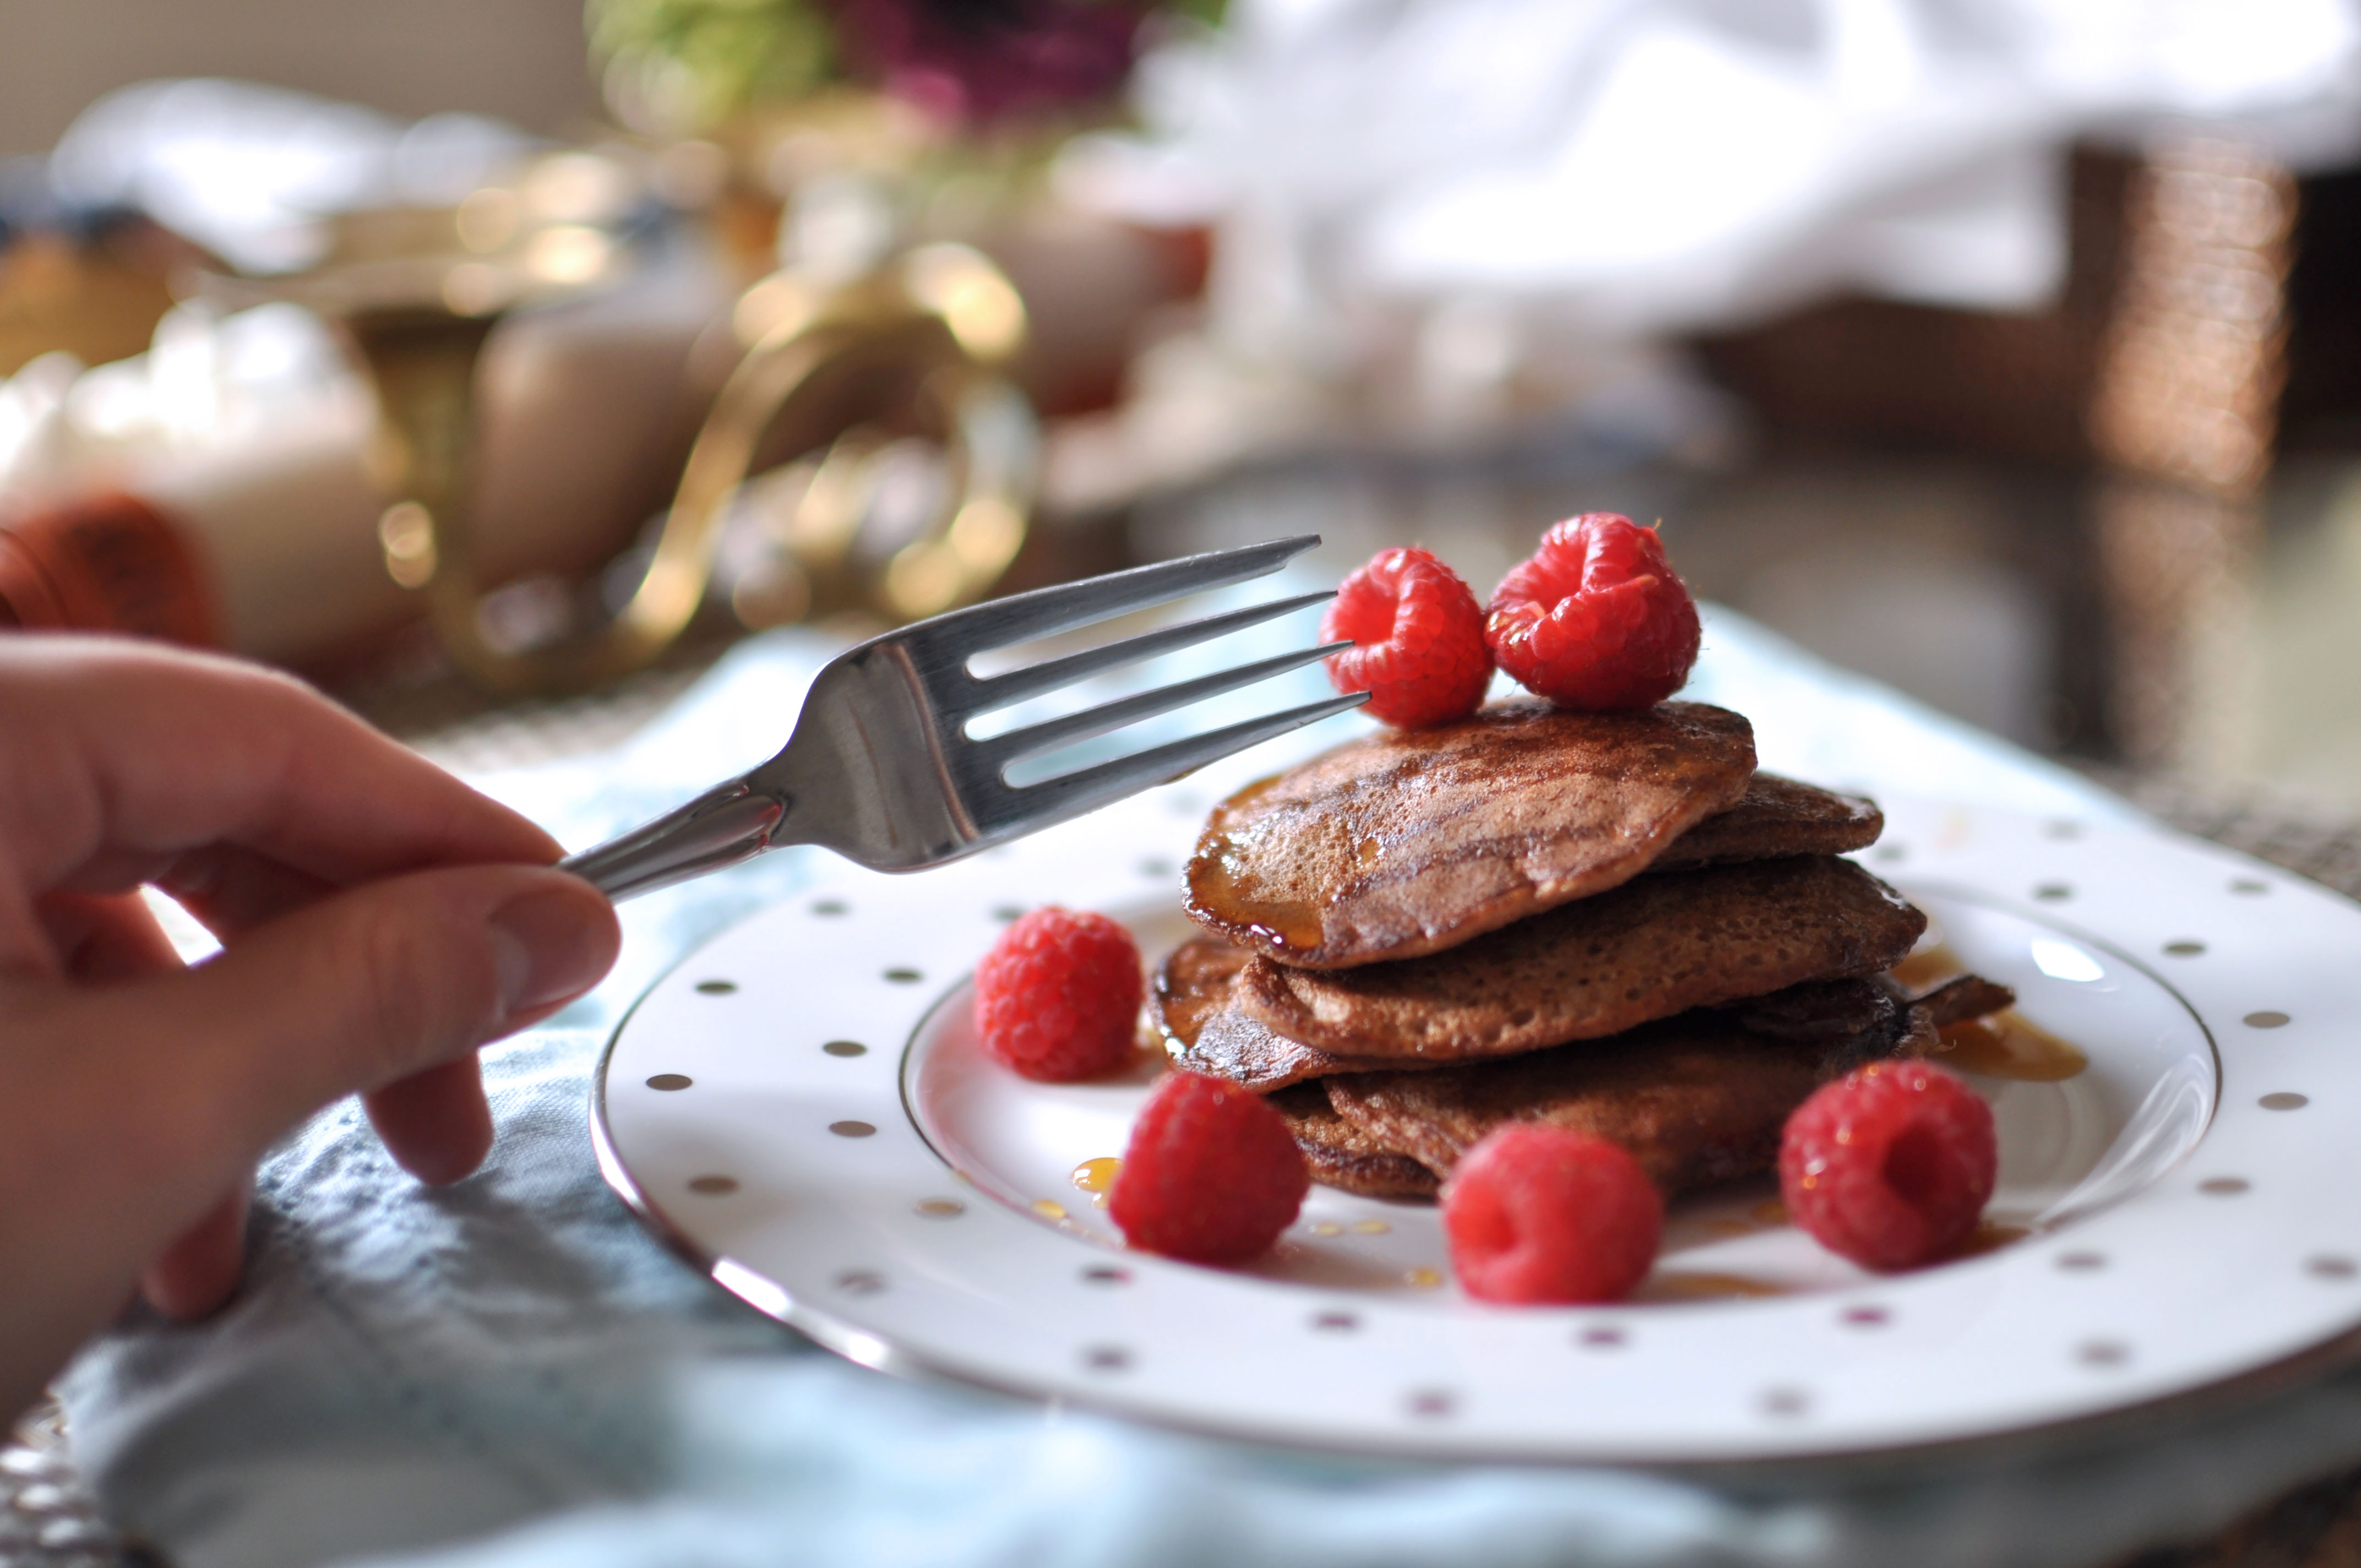 Chocolate Banana 'Pancakes'